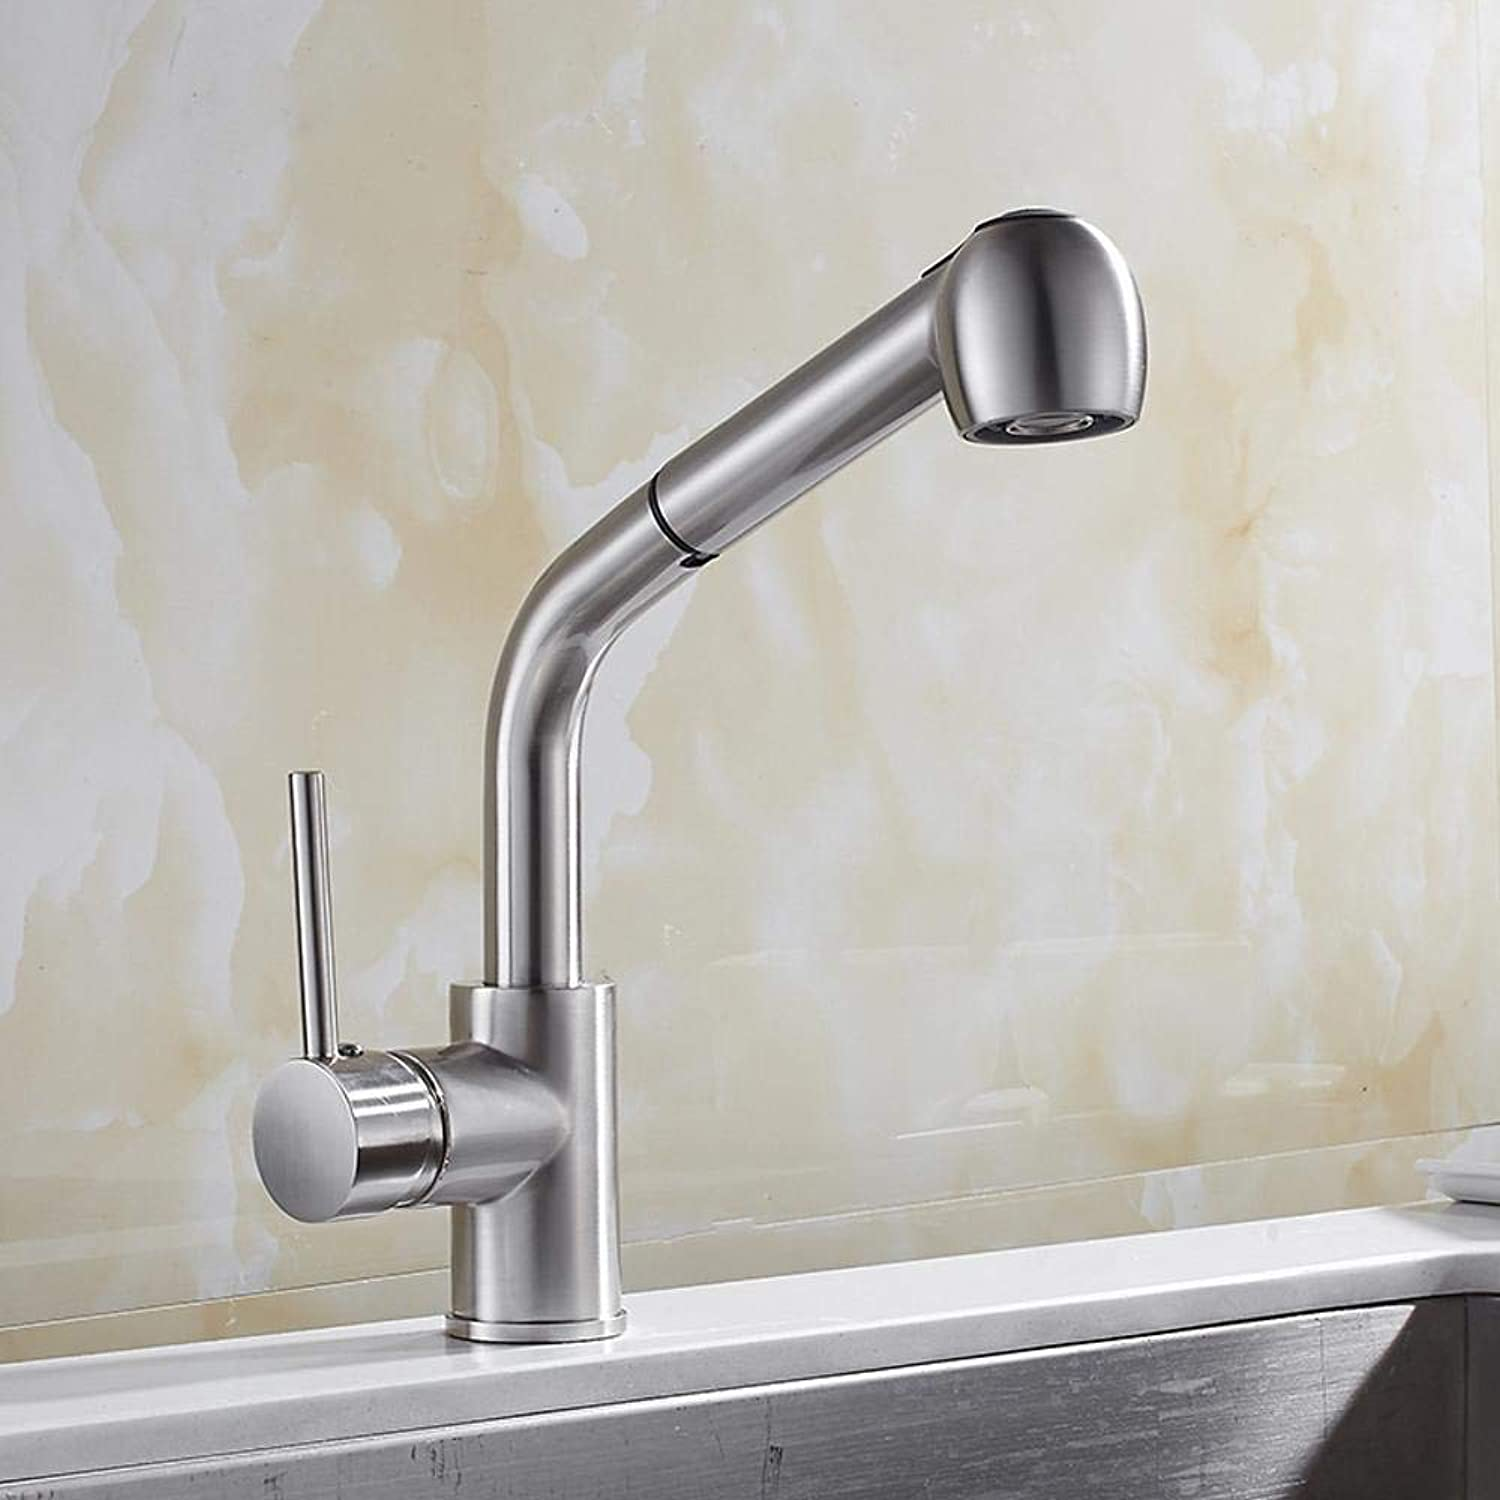 Lxj blueetooth headset Drawing kitchen pull-down faucet sink wash vegetable basin hot and cold faucet redatable